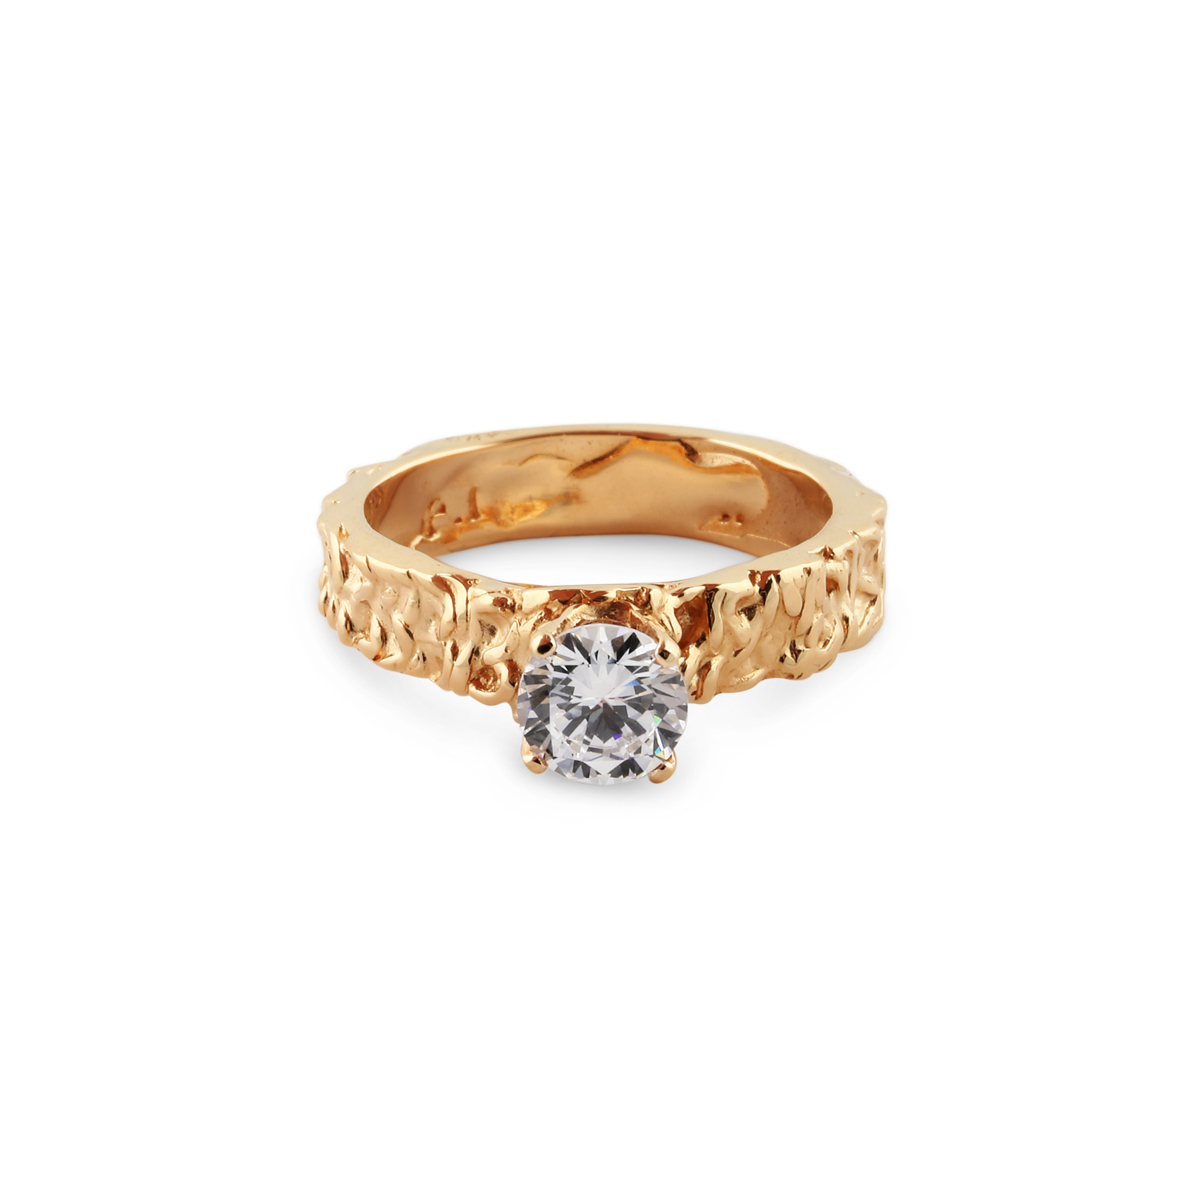 18K SMALL PRINCESS RING in the group SHOP at EMMA ISRAELSSON (ring021)